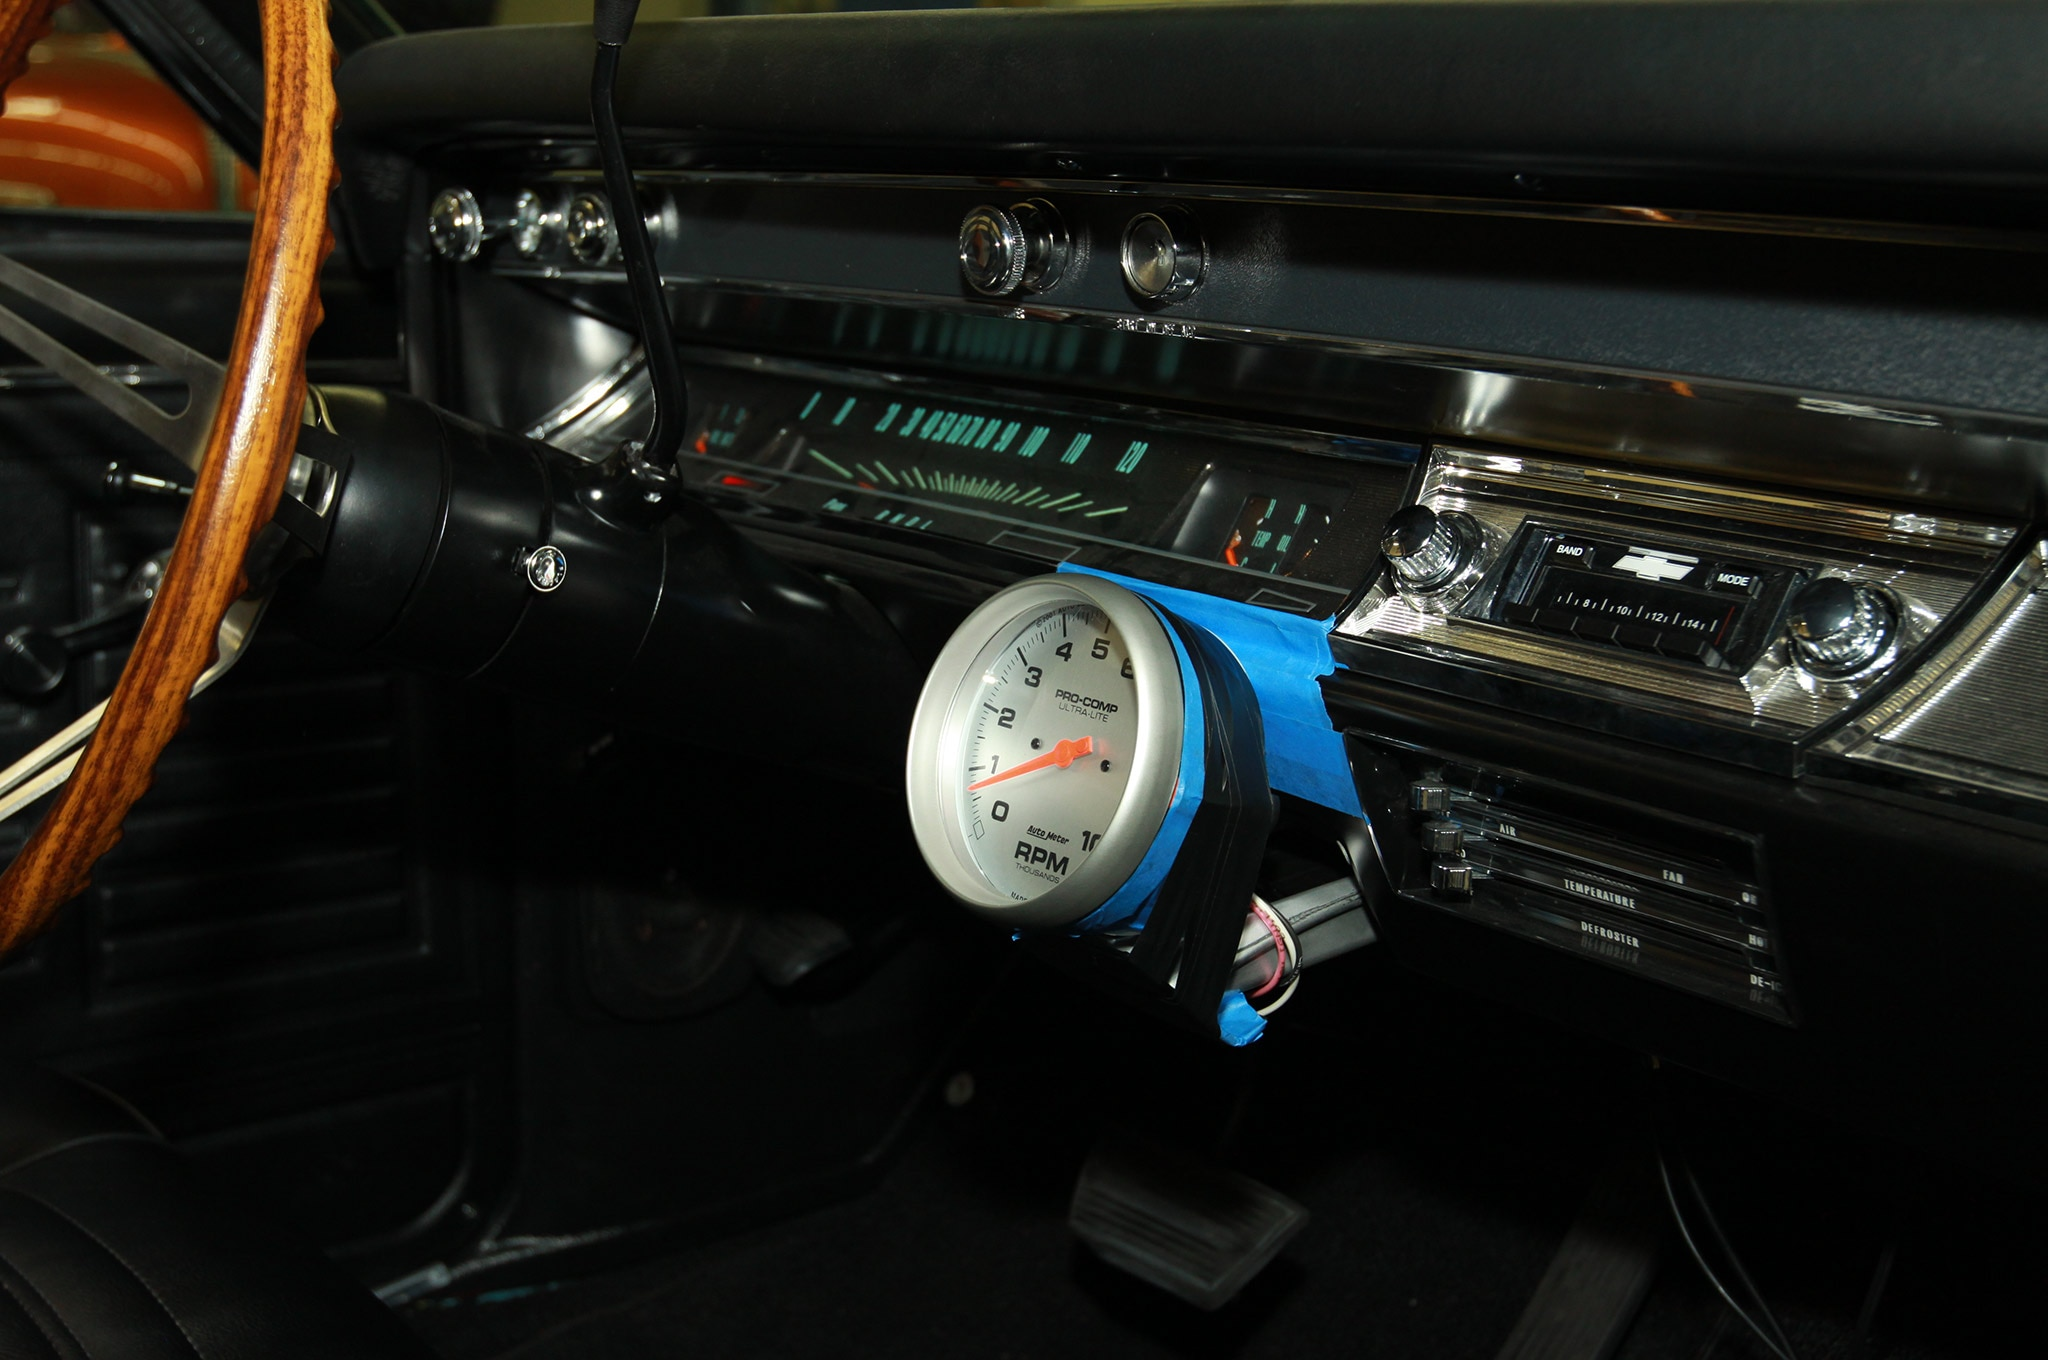 wiring diagram chevy caprice 2 door 327 how to wire an electronic tachometer as easy as 1 2 3 [ 2048 x 1360 Pixel ]